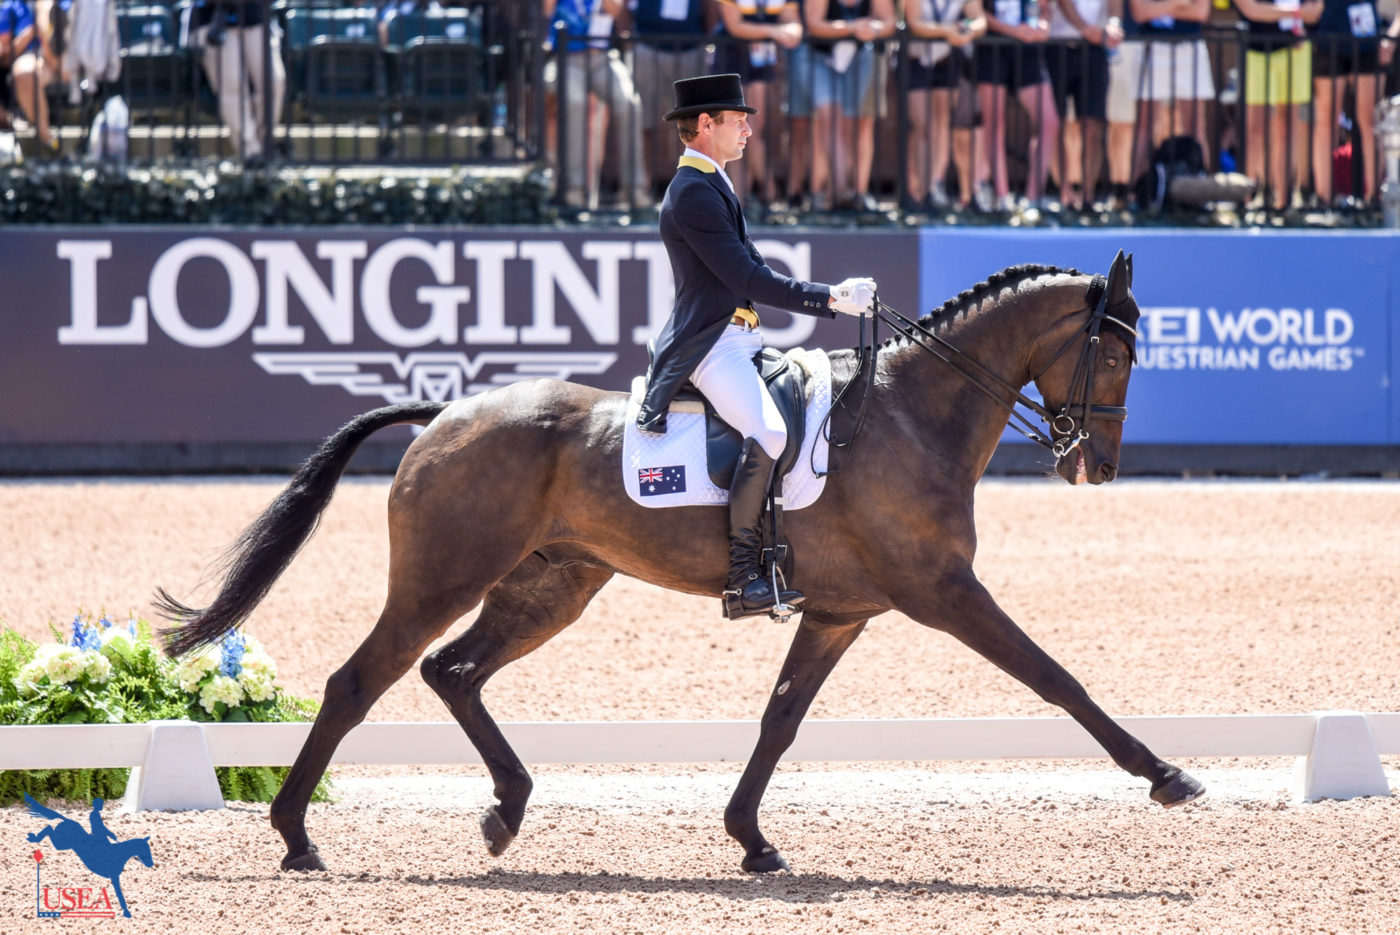 4th - Christopher Burton and Cooley Lands (AUS) - 29.10